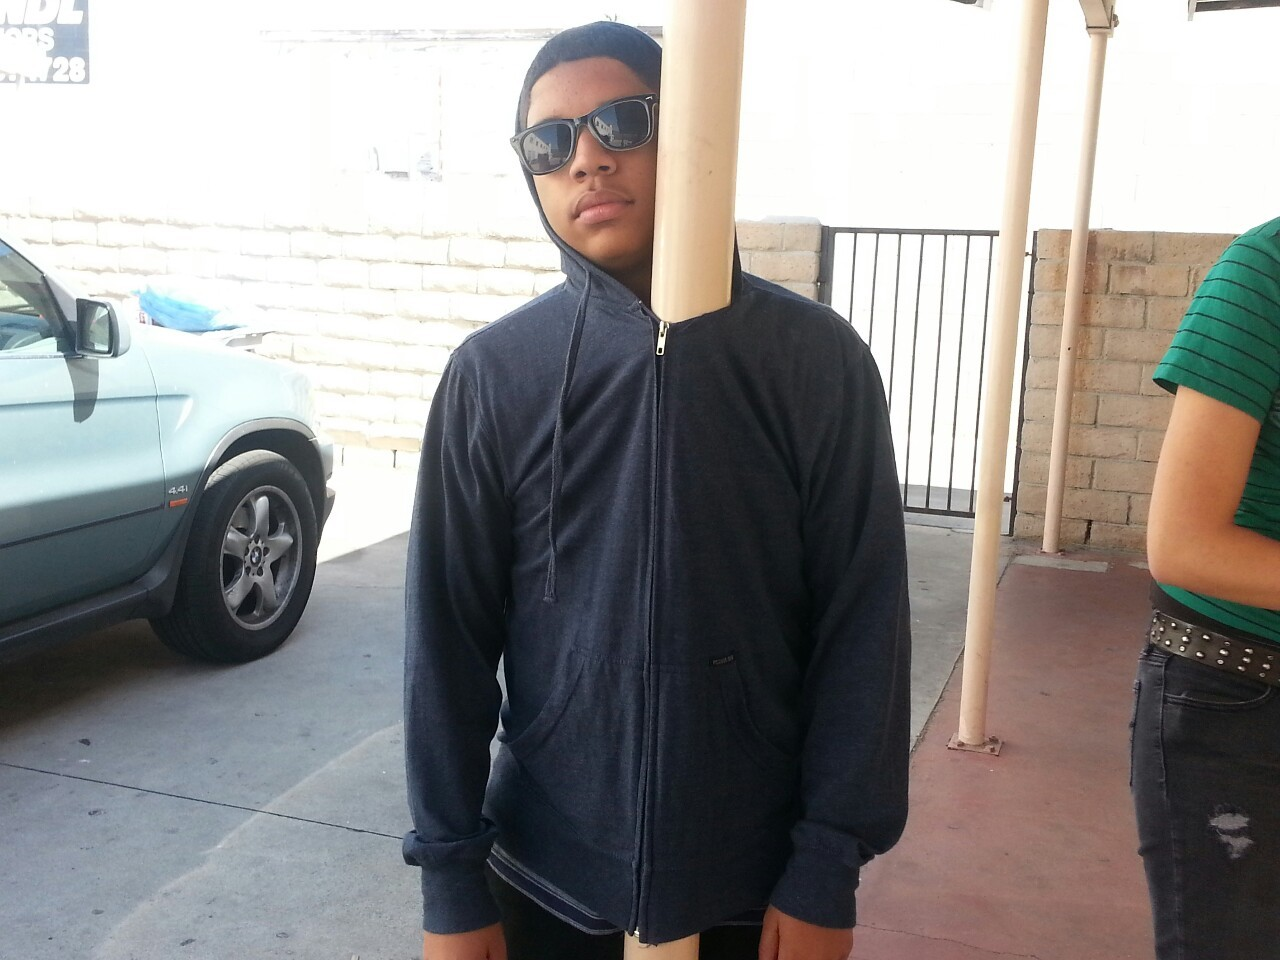 death-by-lulz:  officialtylerperry: THIS KID ZIPPED HIS HOODIE AROUND A POLE AND TOLD THE DEAN HE'S NOT GOING TO CLASS hE'S STILL THERE  This post has been featured on a 1000notes.com blog.